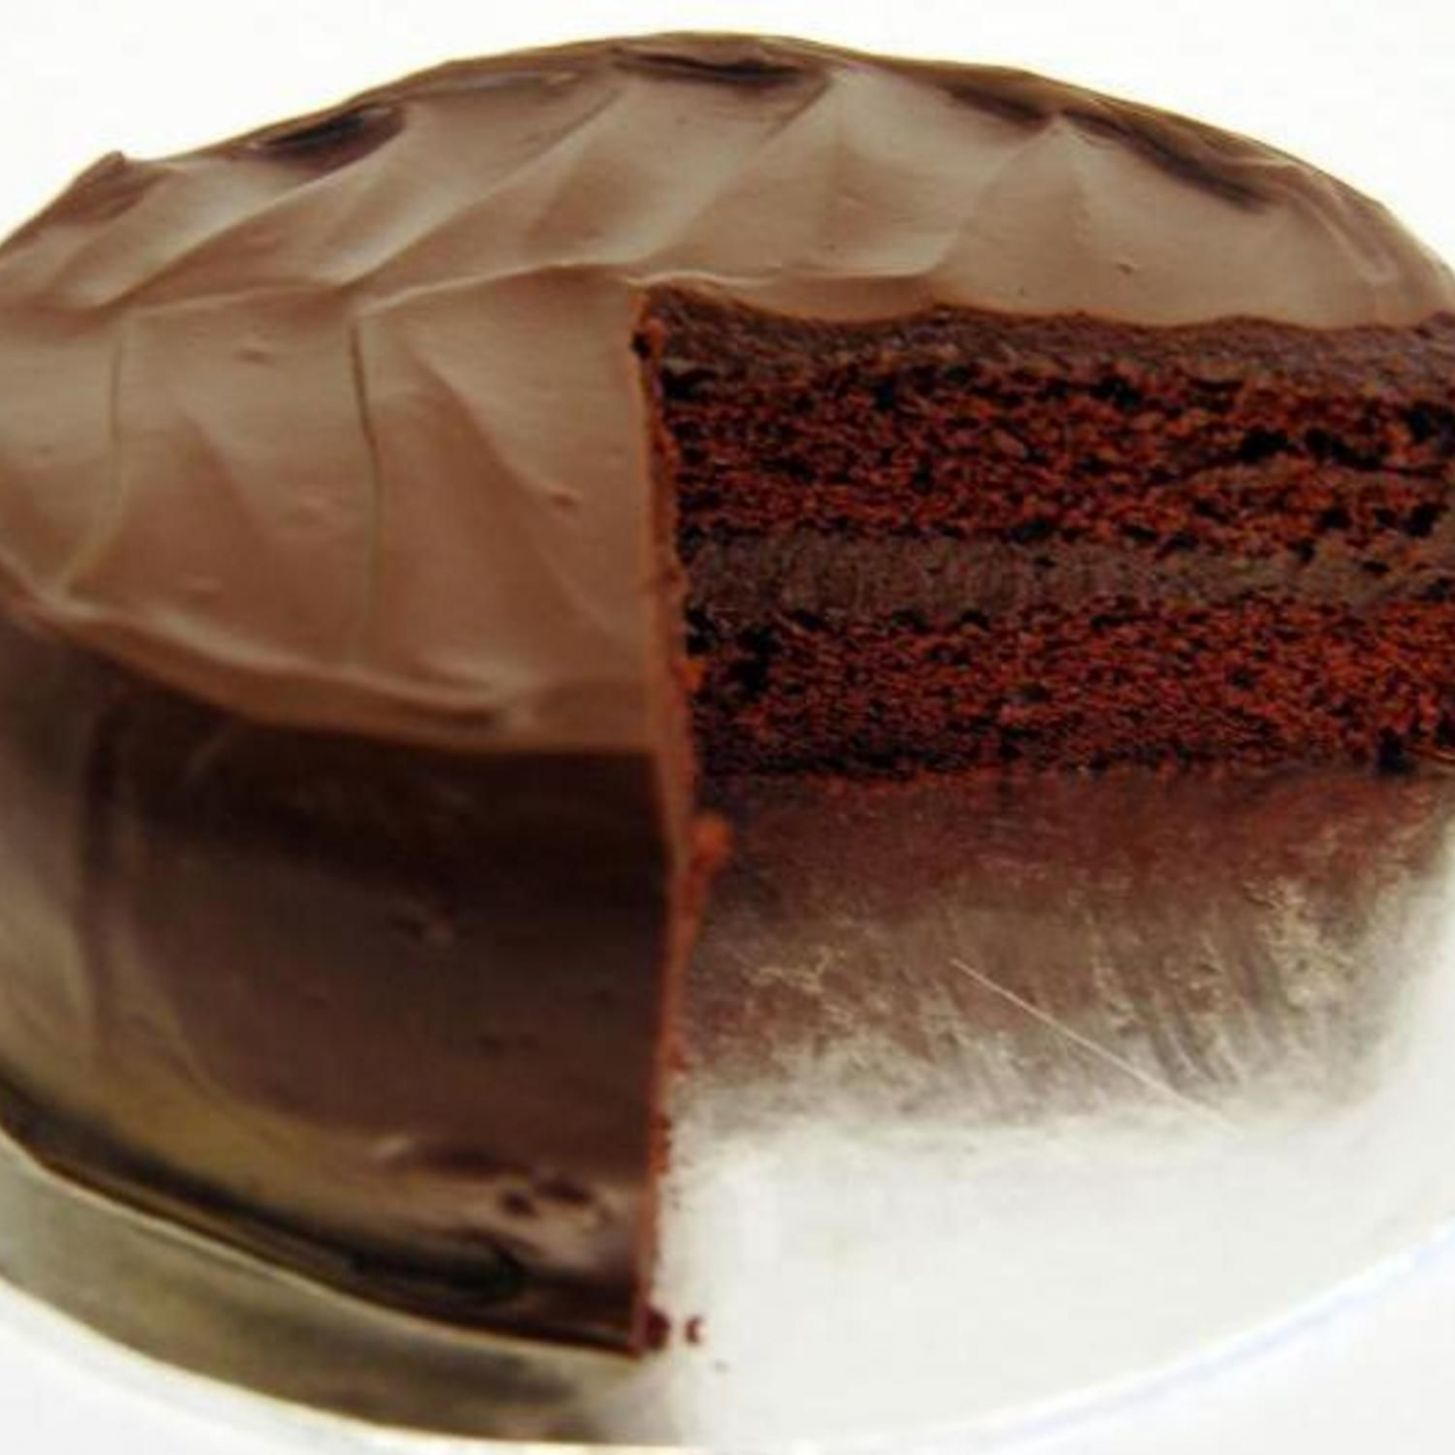 SUGAR FREE Chocolate Cake - Recipes Cakes For Diabetics